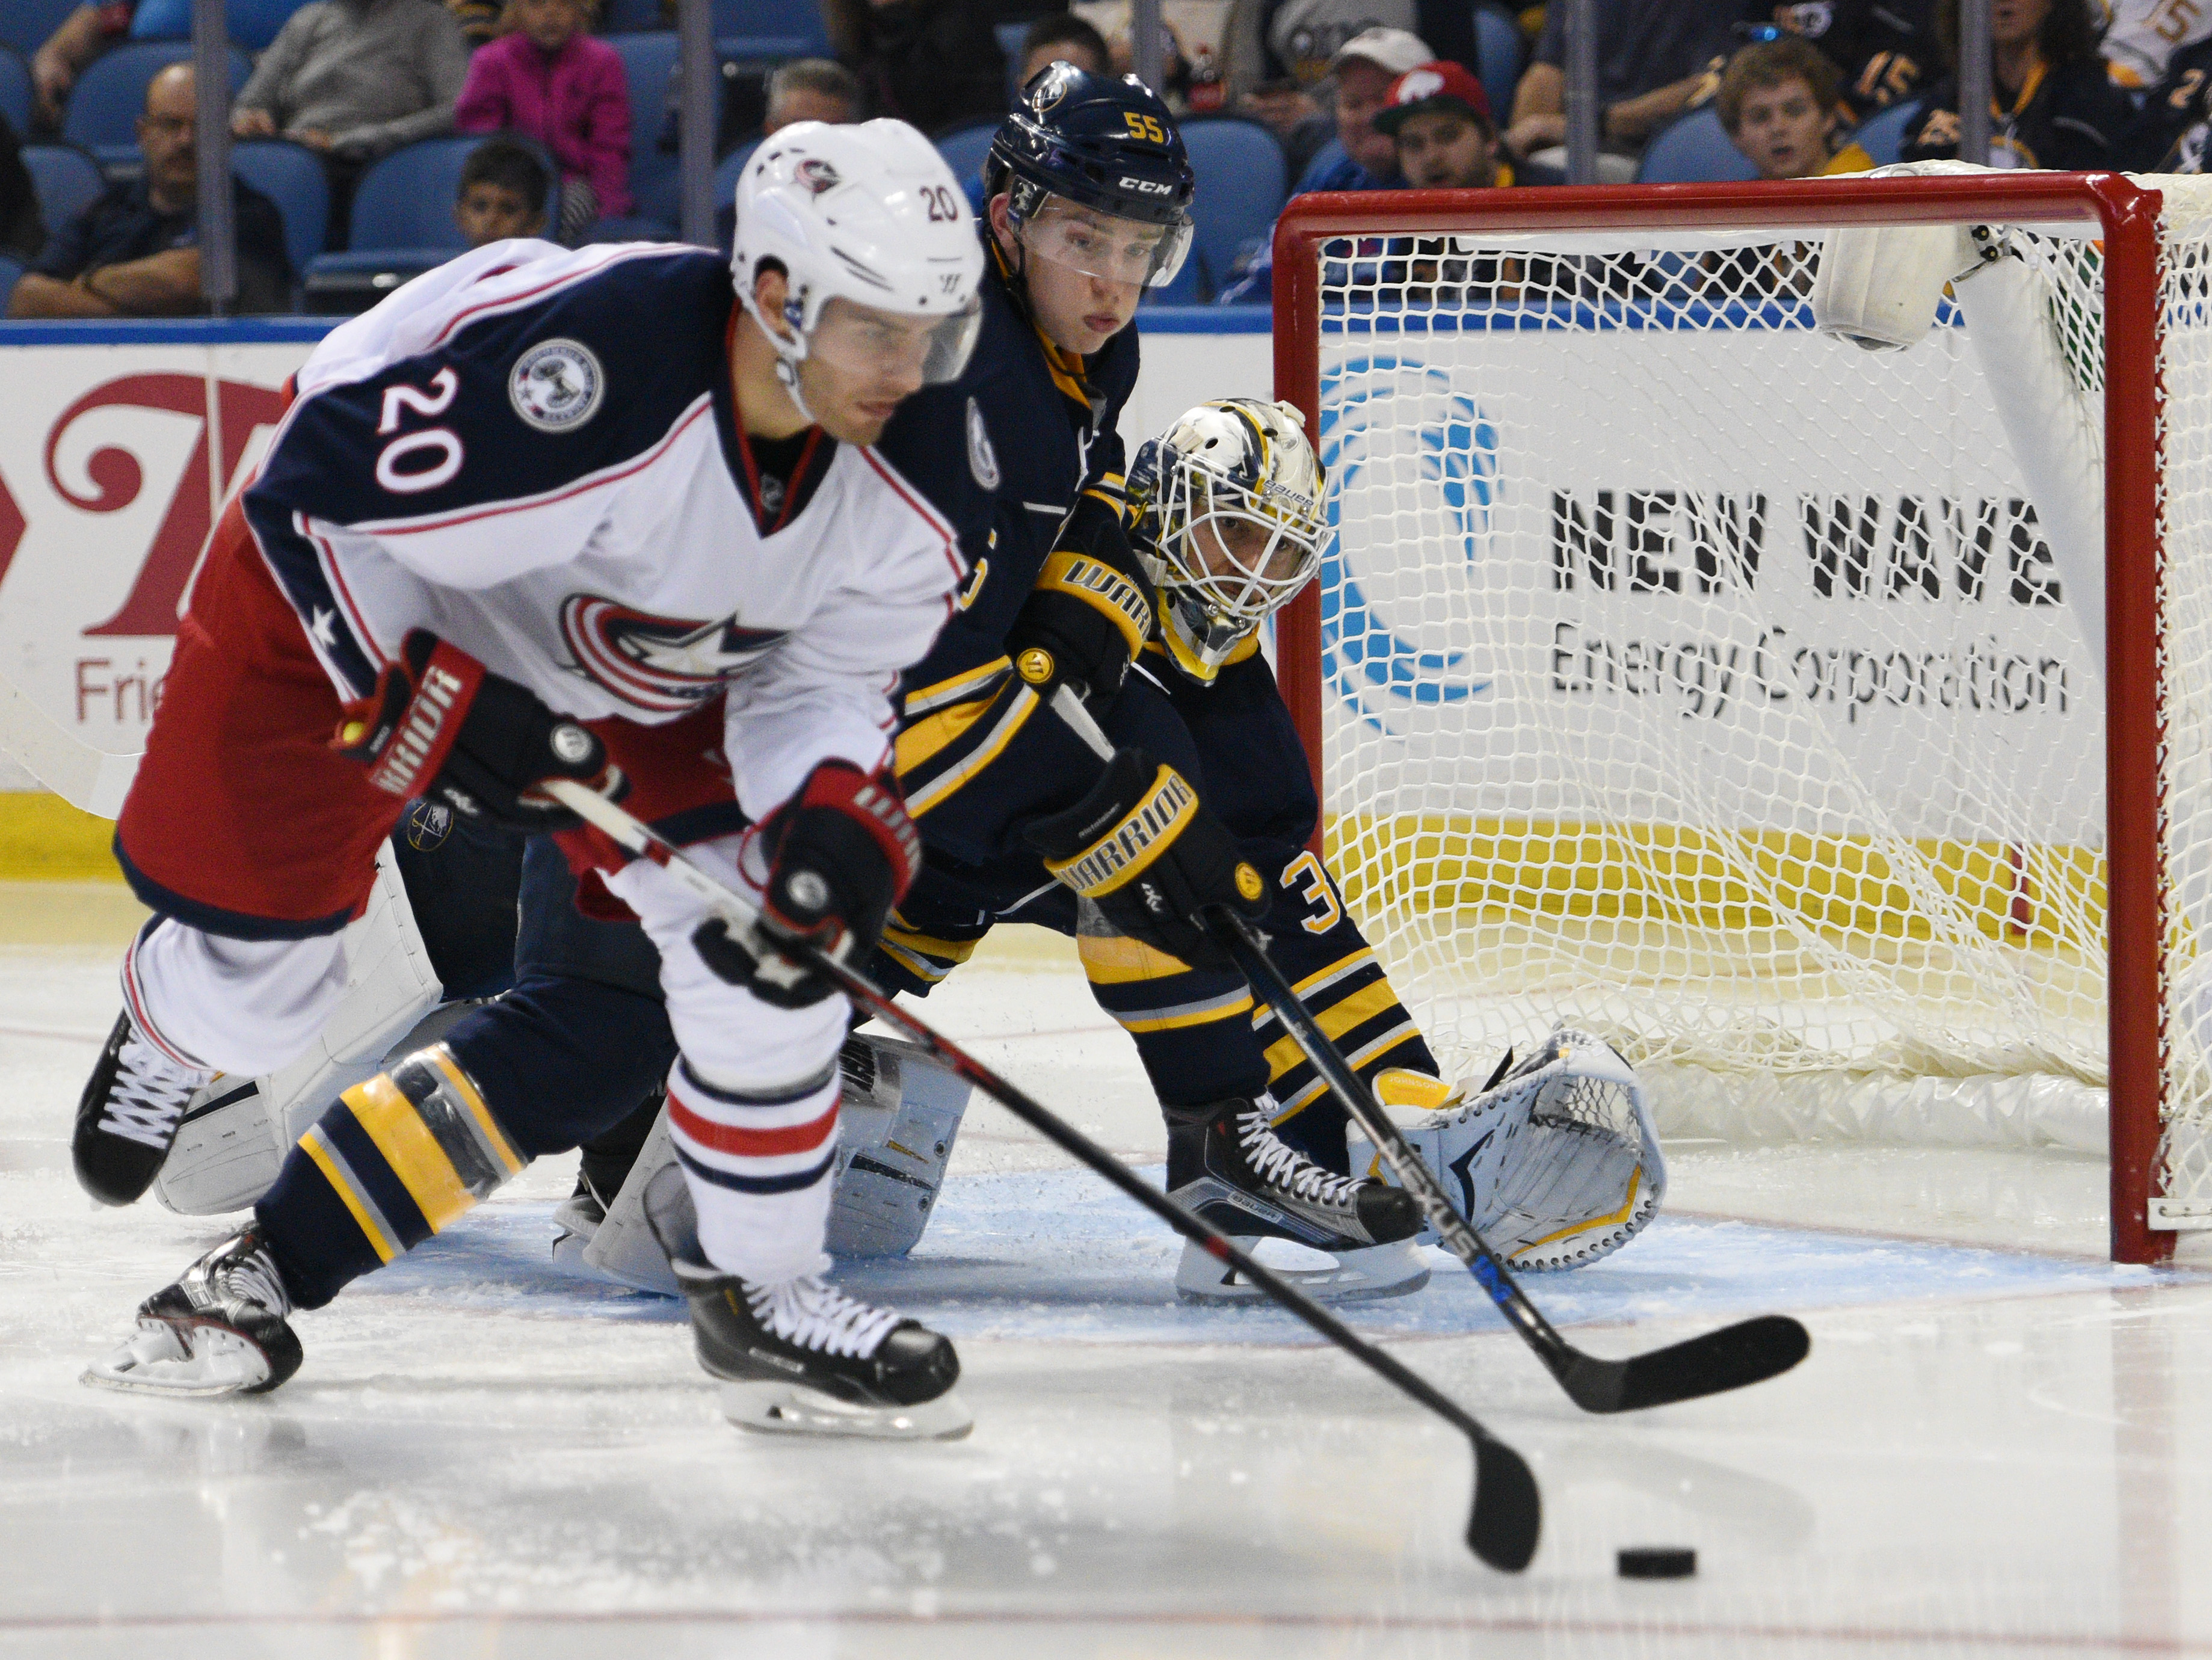 Columbus Blue Jackets left winger Brandon Saad (20) moves the puck in front of Buffalo Sabres defenseman Rasmus Ristolainen (55) and goaltender Chad Johnson (31) during the second period of an NHL hockey game, Monday, Oct. 12, 2015, in Buffalo, N.Y. (AP P